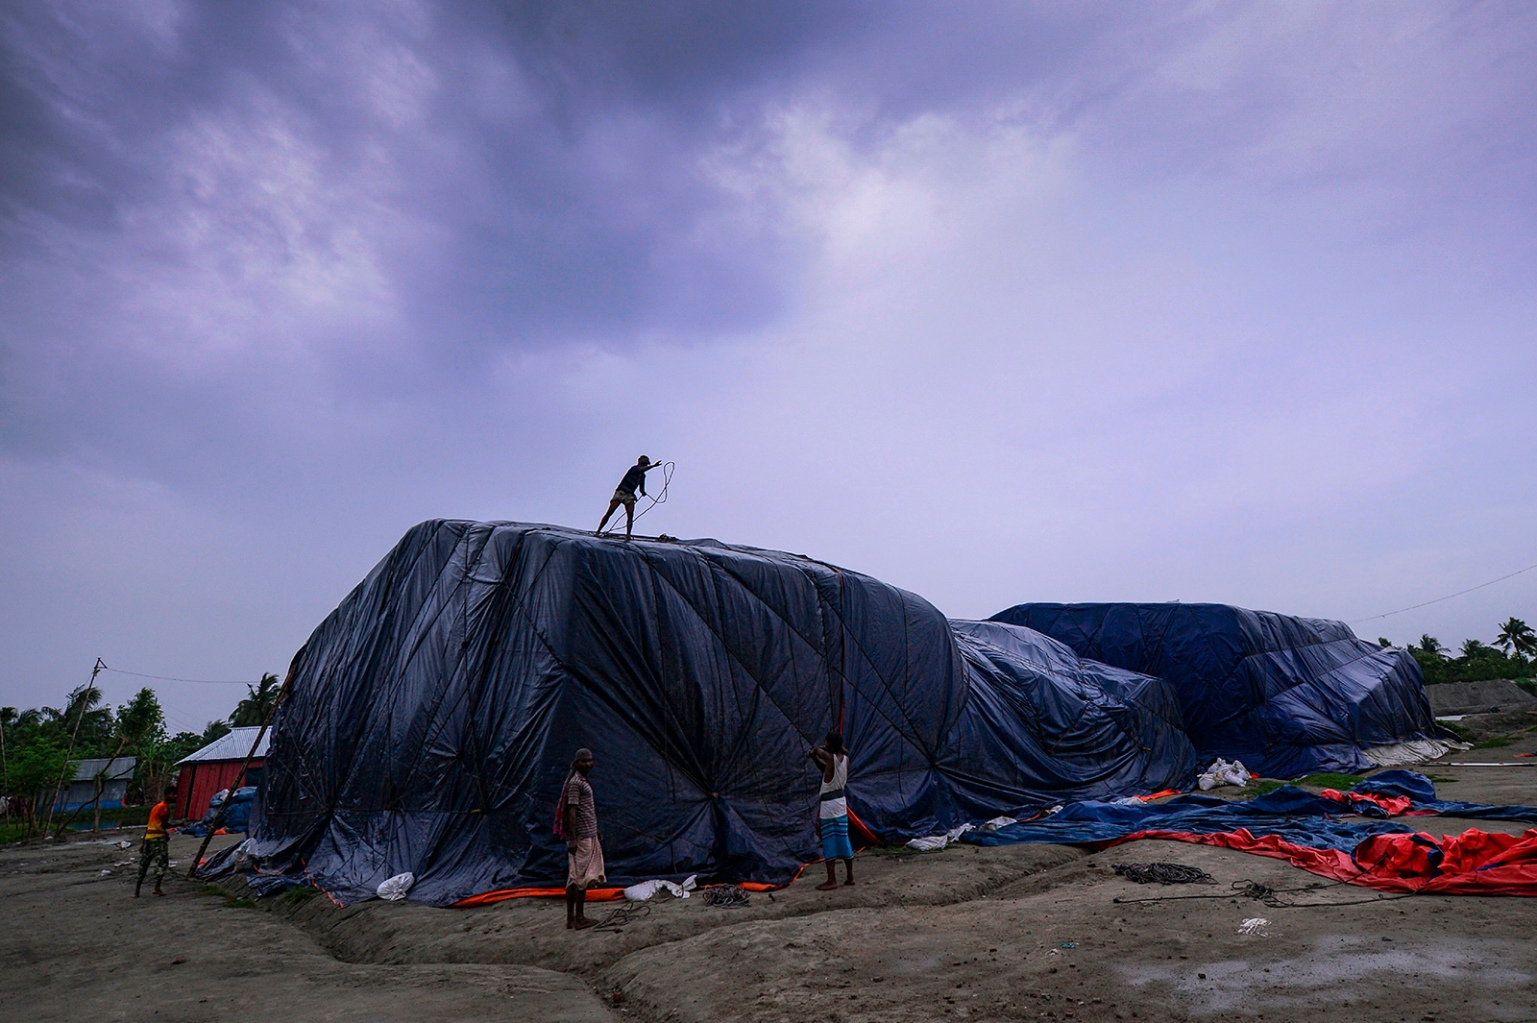 Bangladeshi workers cover a pile of fertilizer with a plastic sheet in Khulna on May 3 as Cyclone Fani barrels northeastward into West Bengal state and toward Bangladesh. MUNIR UZ ZAMAN/AFP/Getty Images